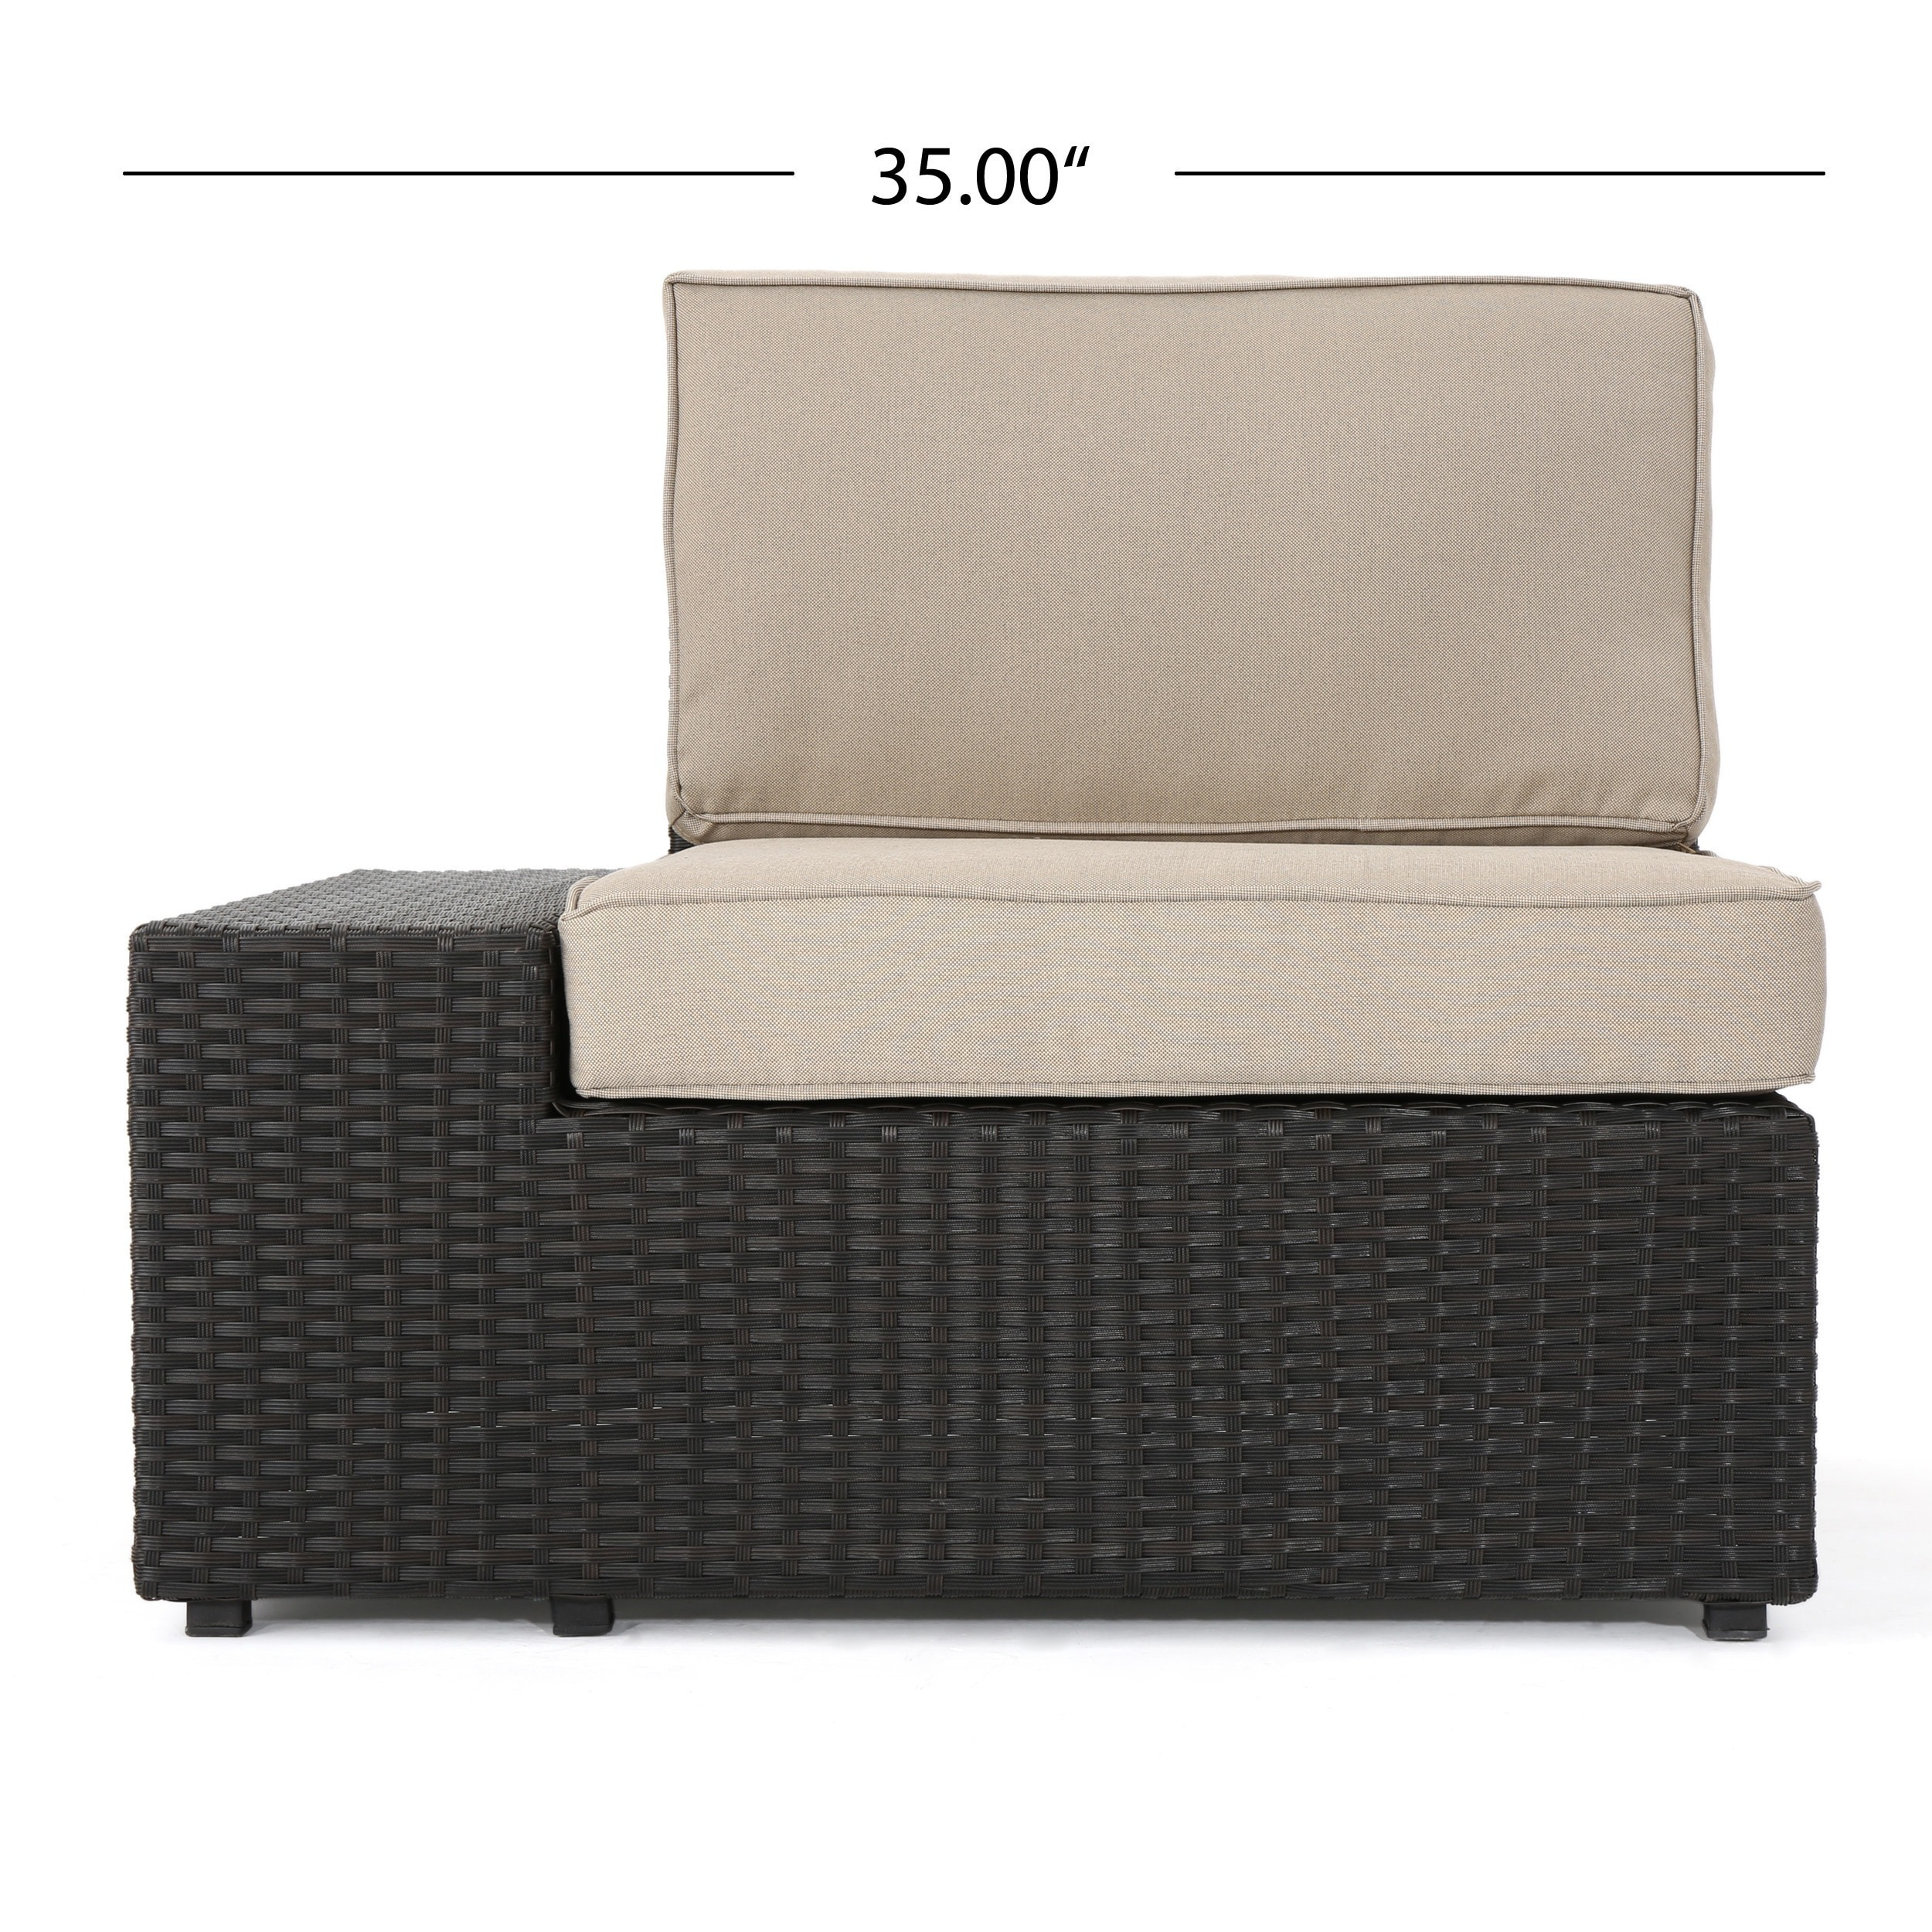 Santa Cruz Outdoor 7 Piece Wicker Sofa Set With Cushions By Christopher  Knight Home   Free Shipping Today   Overstock.com   18190223